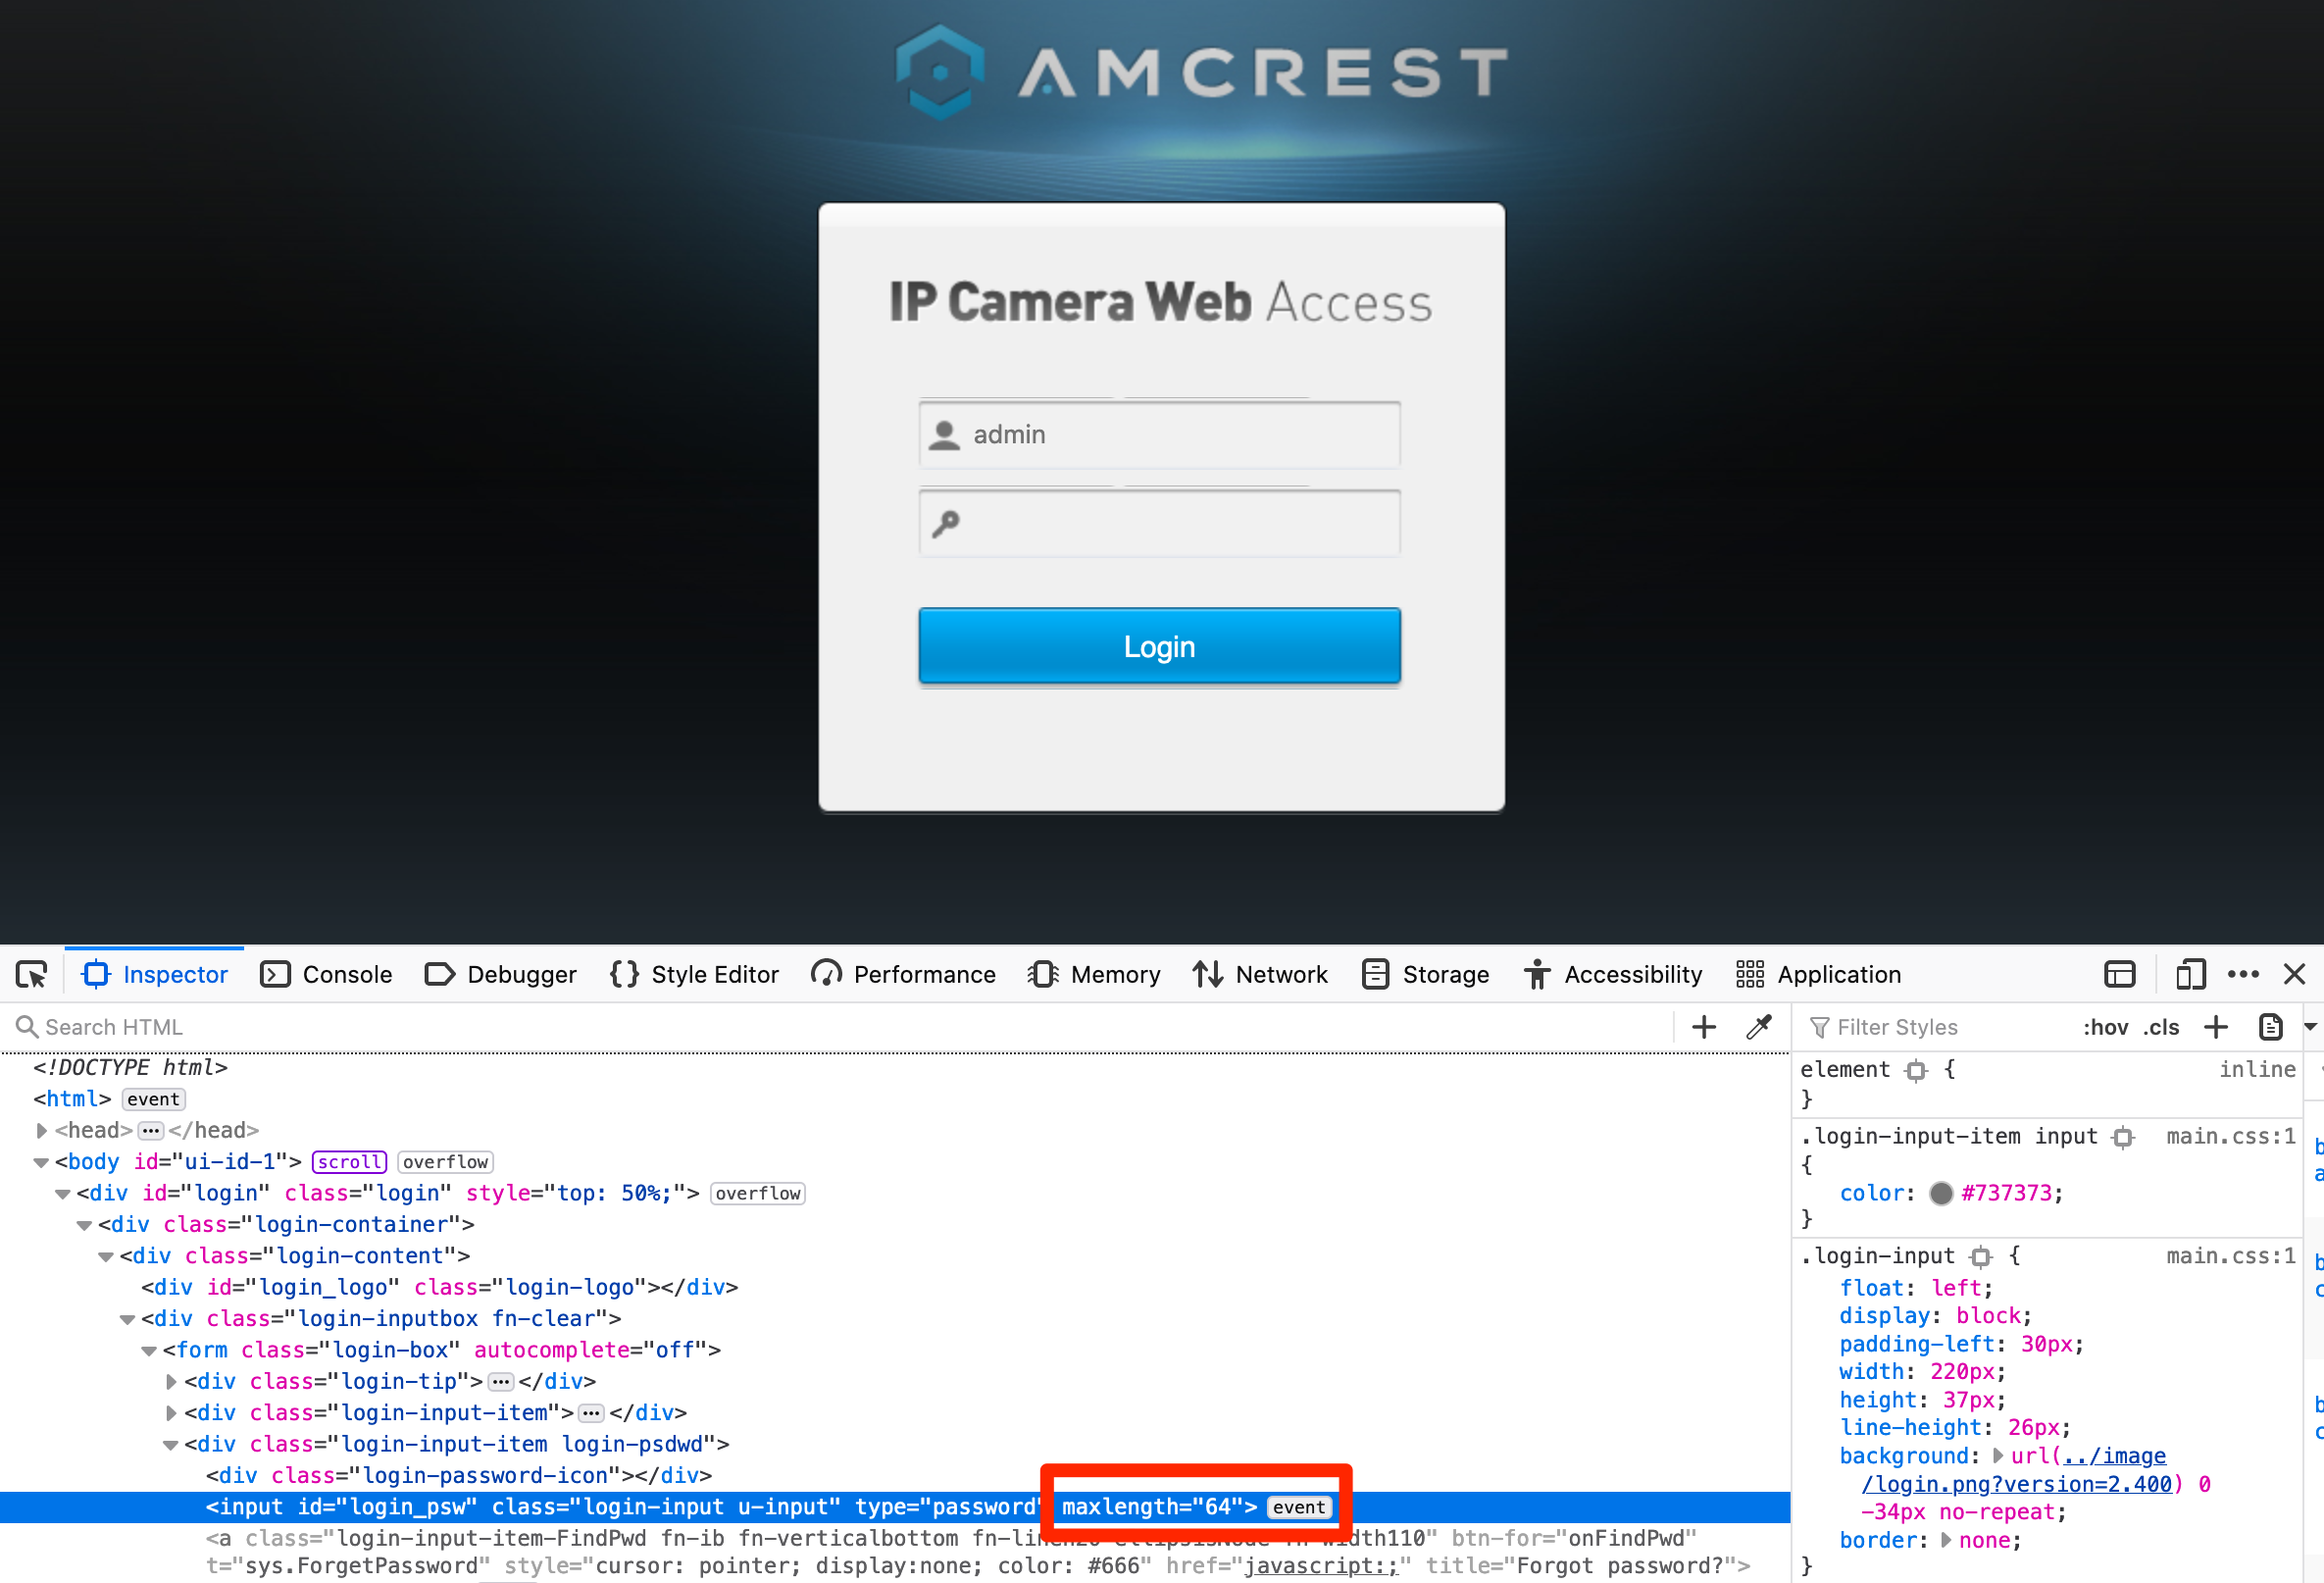 Screenshot showing the HTML for the password field on the login page